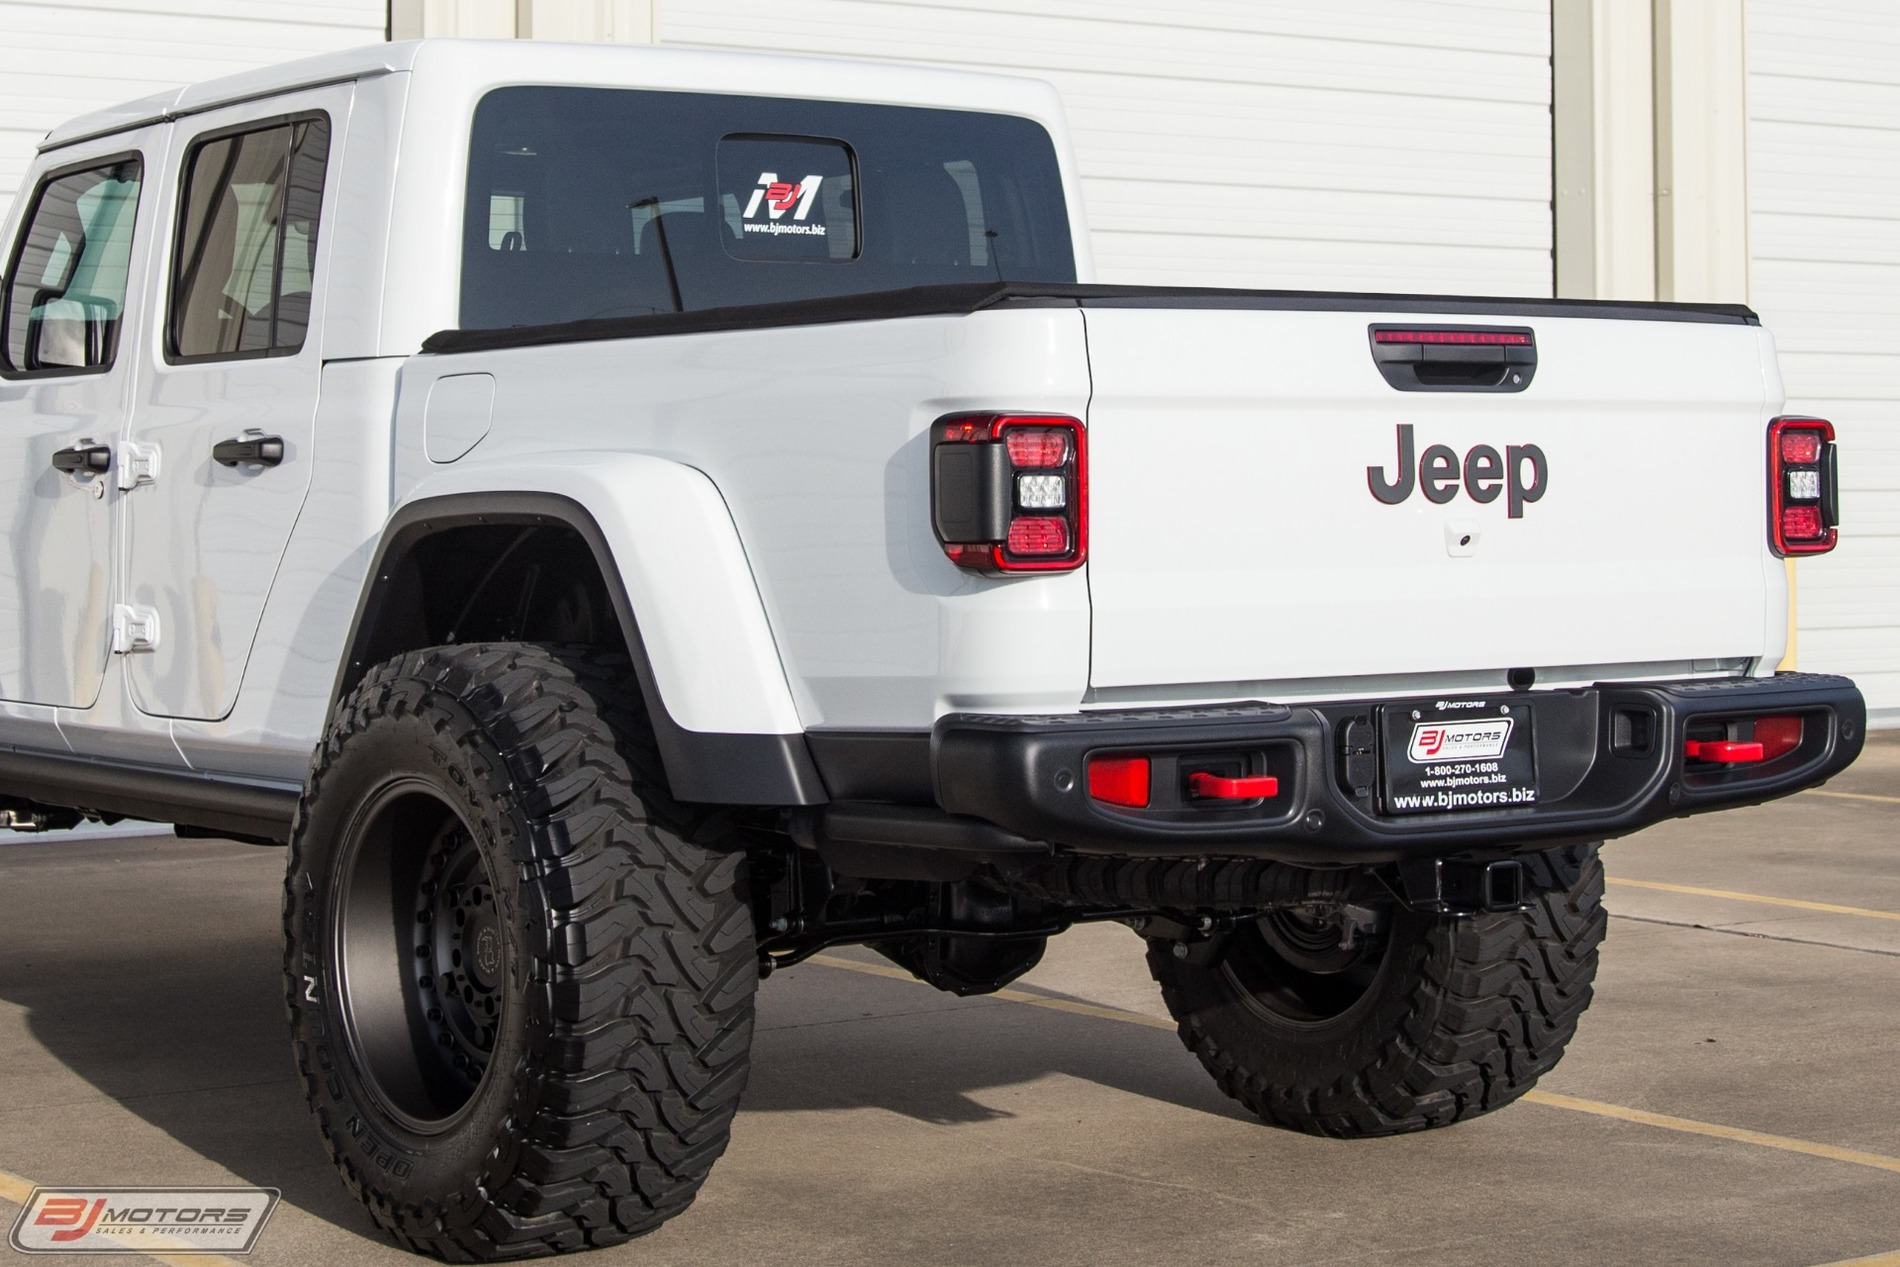 Used-2020-Jeep-Gladiator-Rubicon-Signature-Series-I.jpg